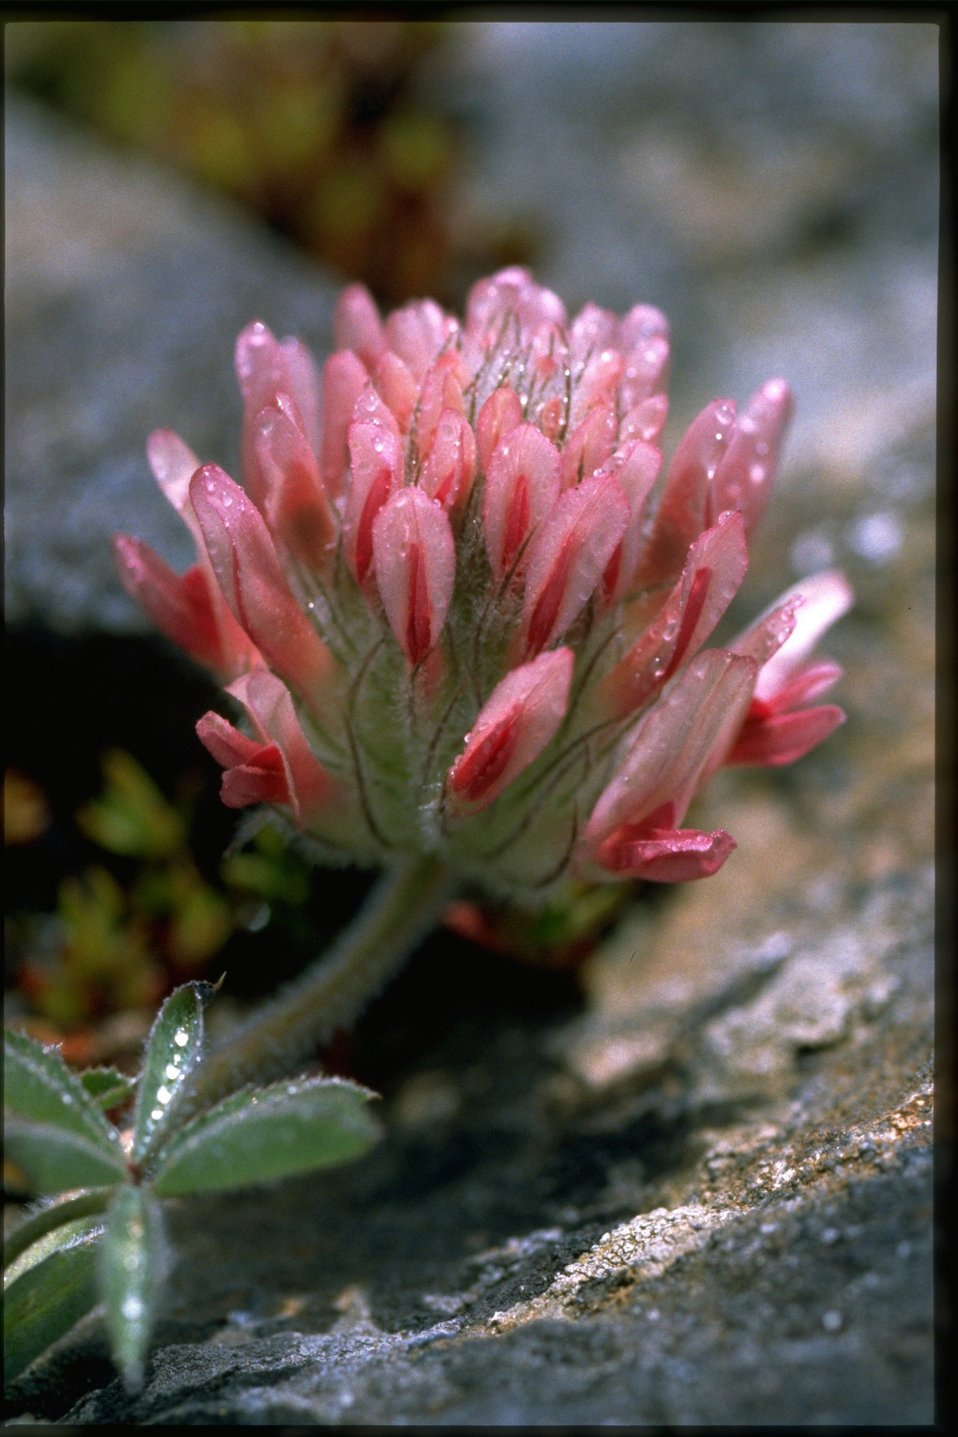 Closeup shot of Big-headed clover, Trifolium macrocephalum.